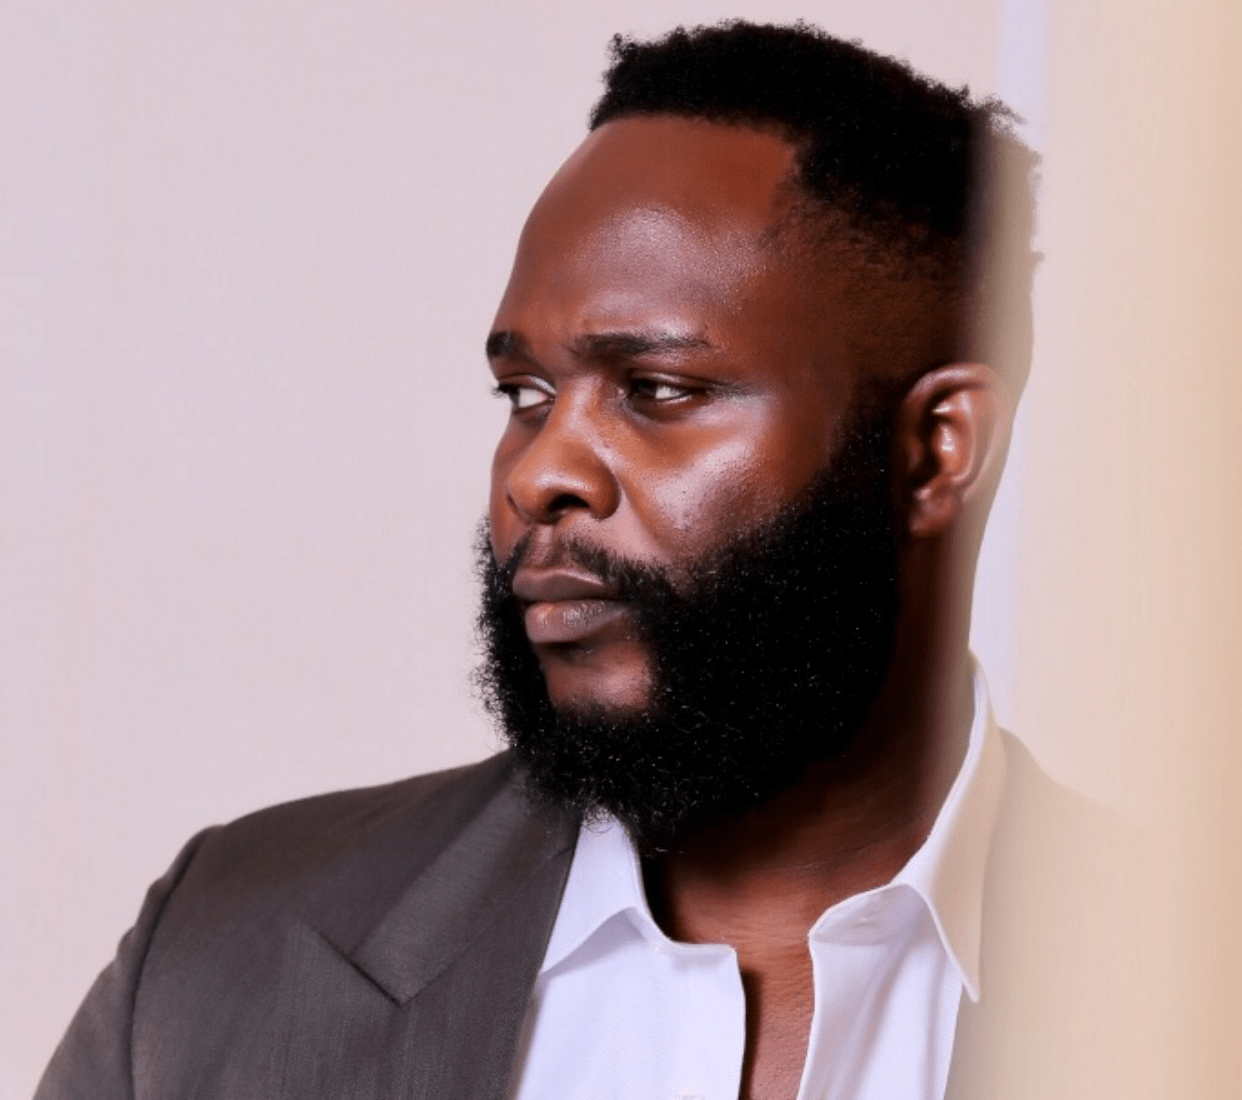 Joro Olumofin advises ladies on how to prevent ending up as a side chick